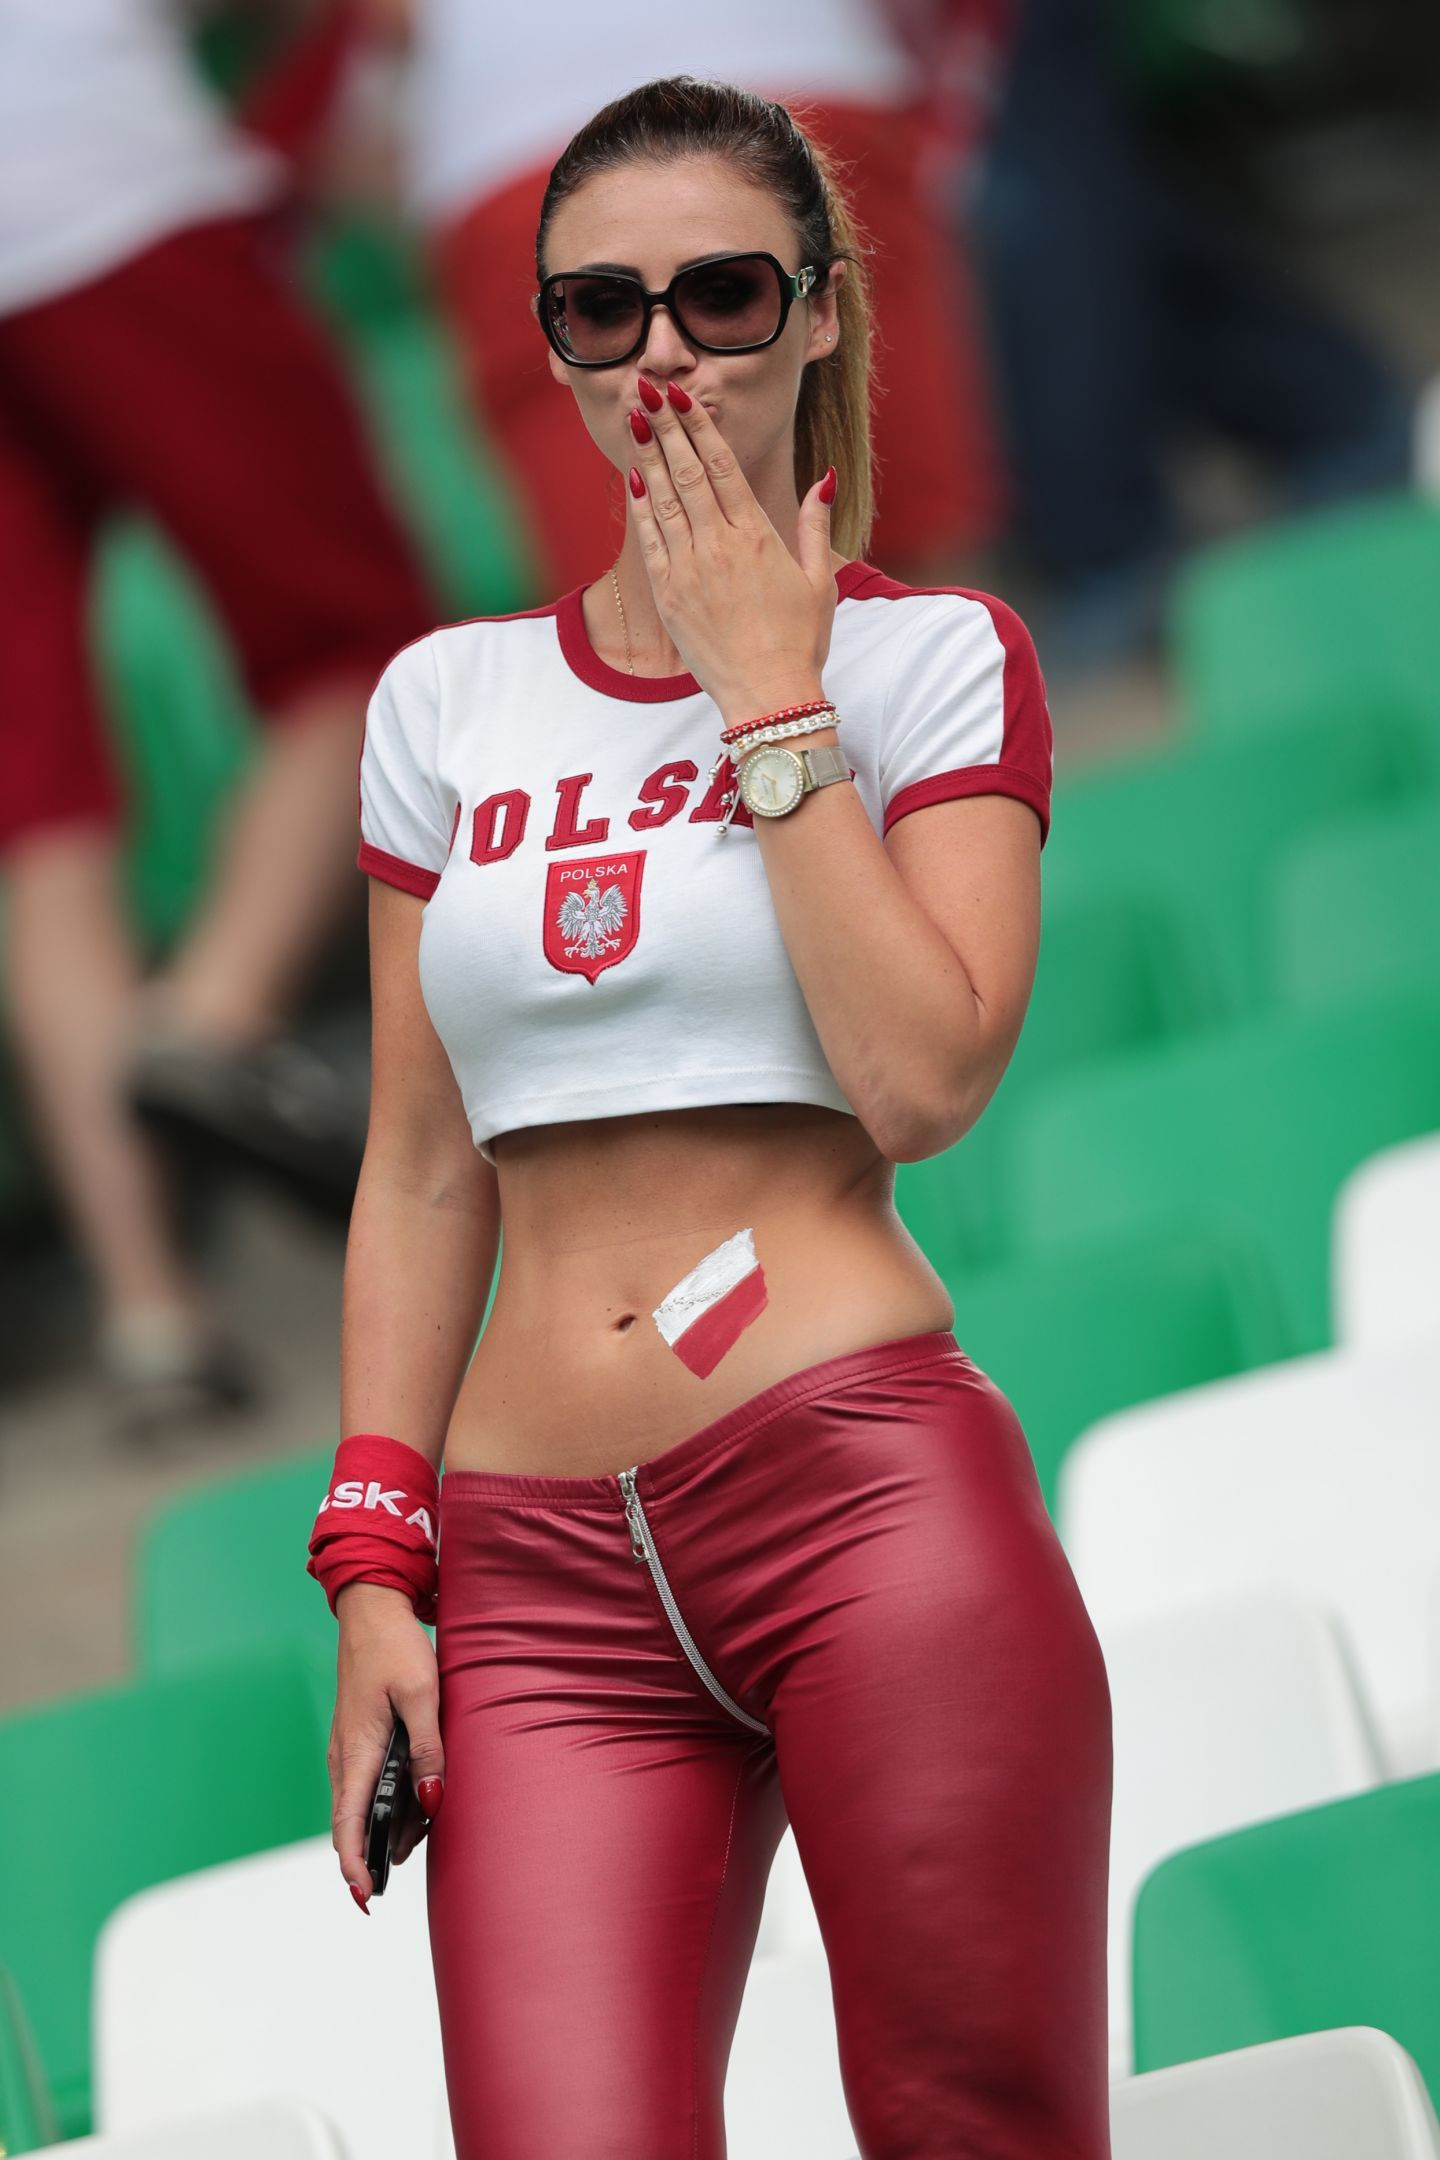 futbol fan pretty in red velvet pants tight